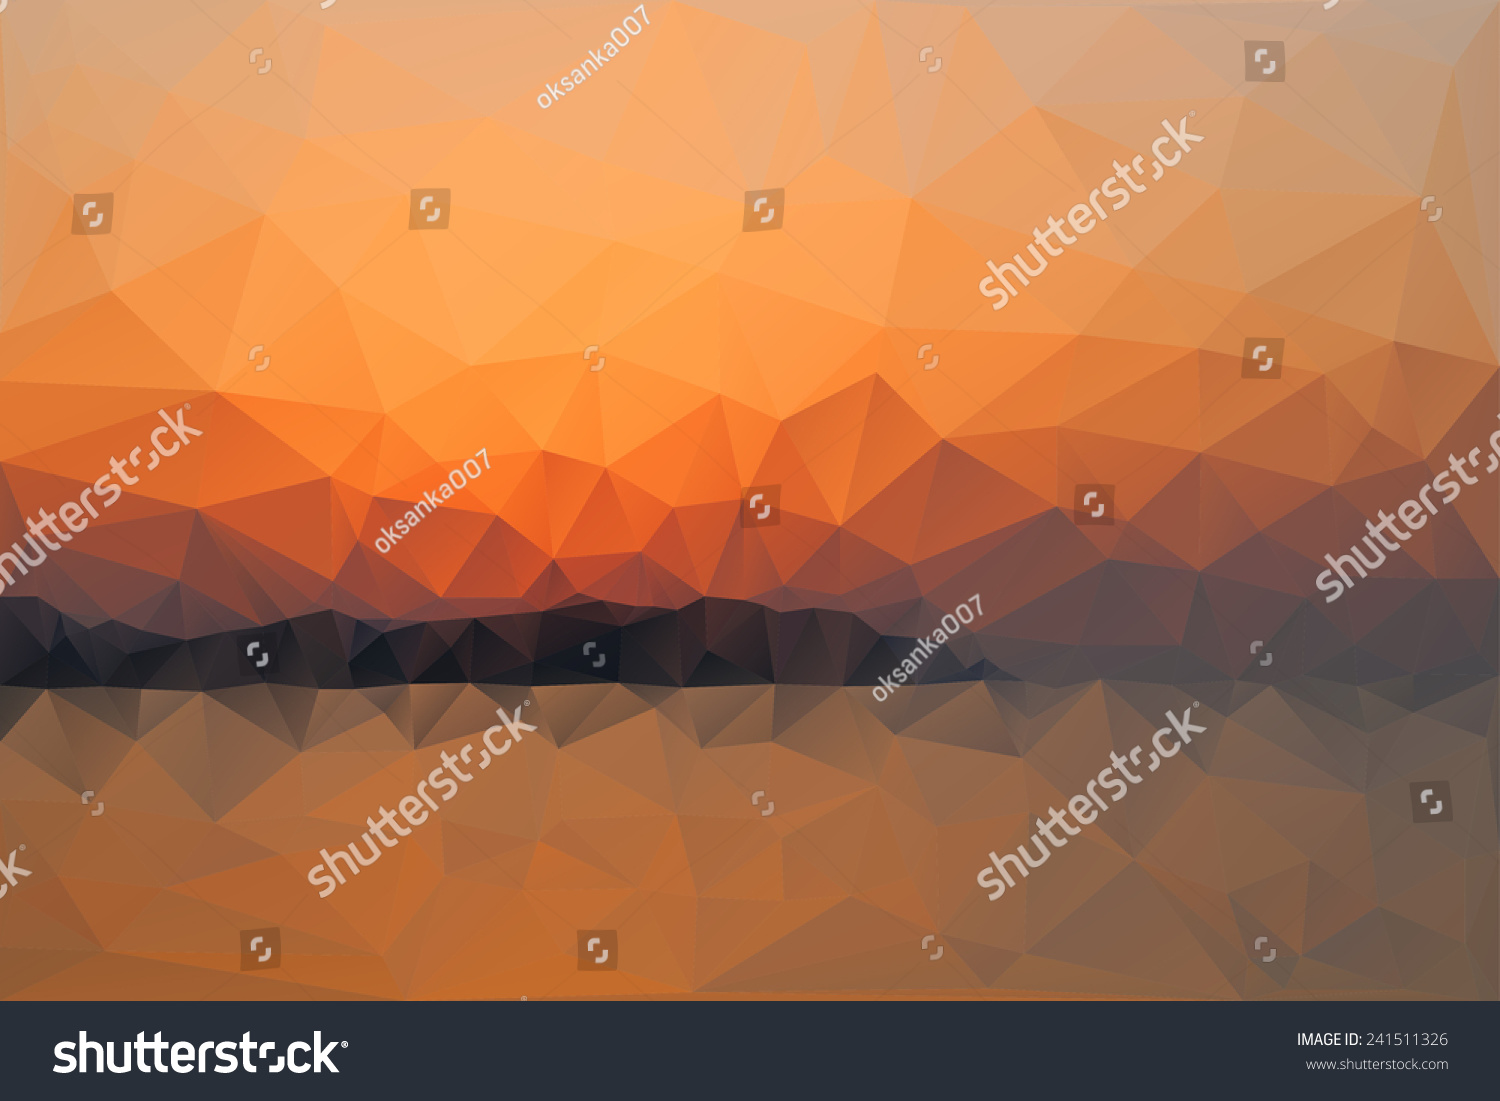 Website soft colors - Triangle Background Vector Polygon Art Soft Colored Abstract Illustration Web Mobile